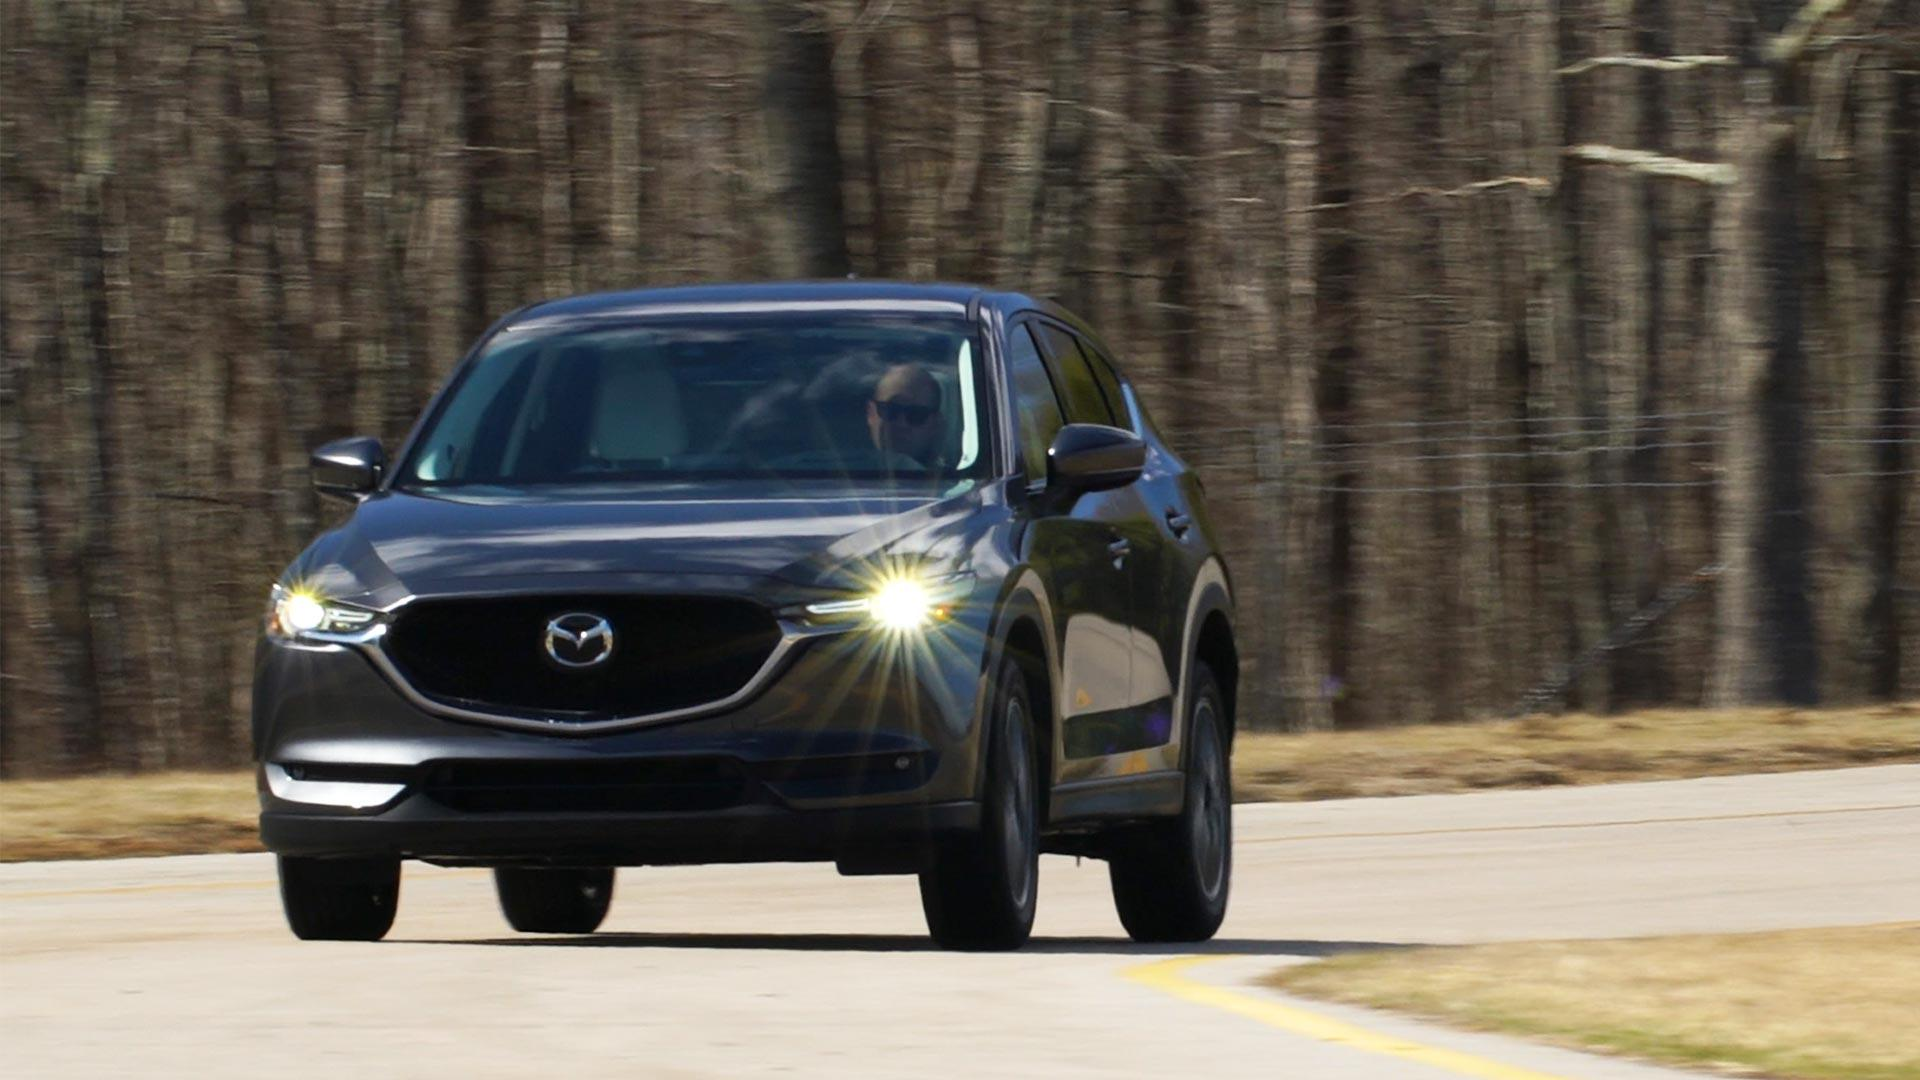 2017 Mazda CX-5 Could Reshuffle the Small-SUV Order - Consumer Reports